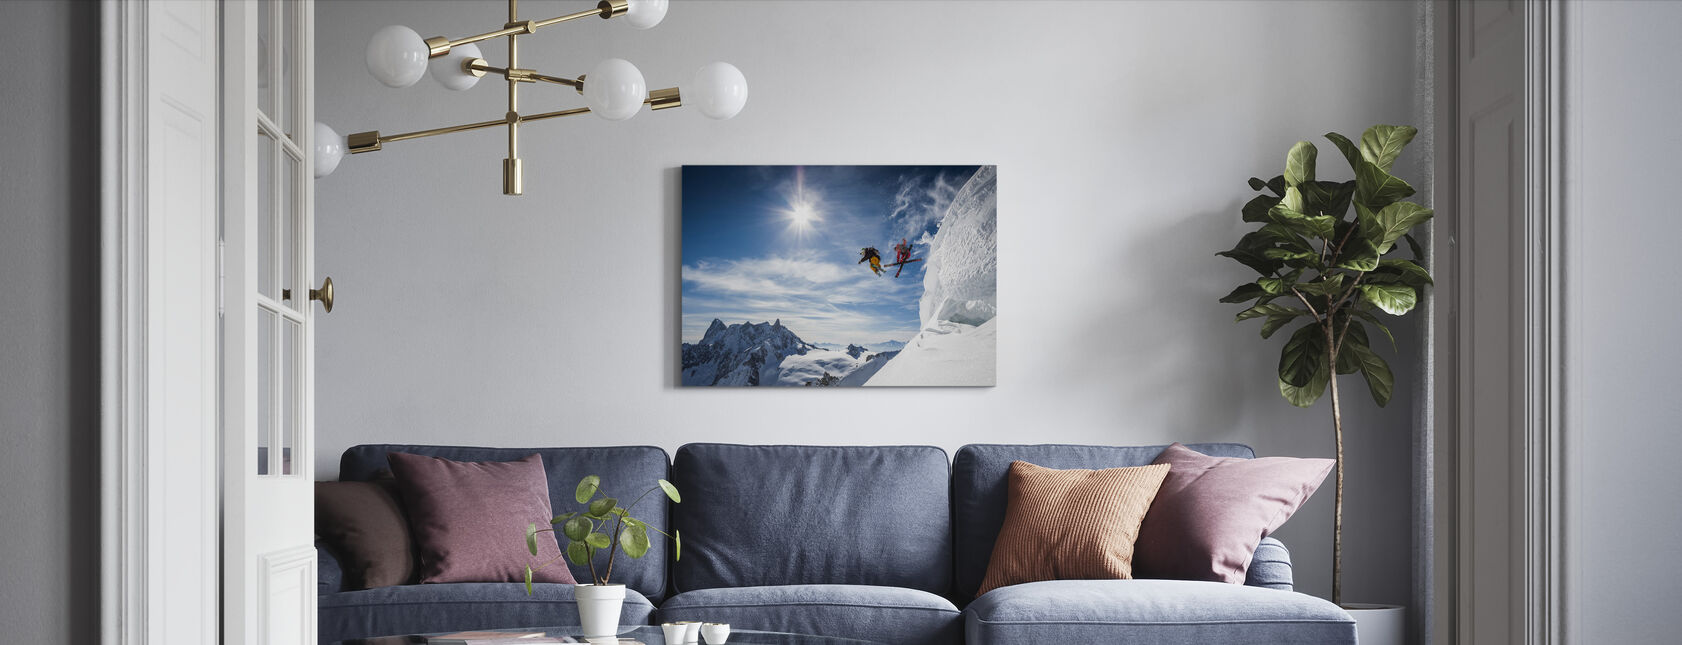 Jumping Legends - Canvas print - Living Room